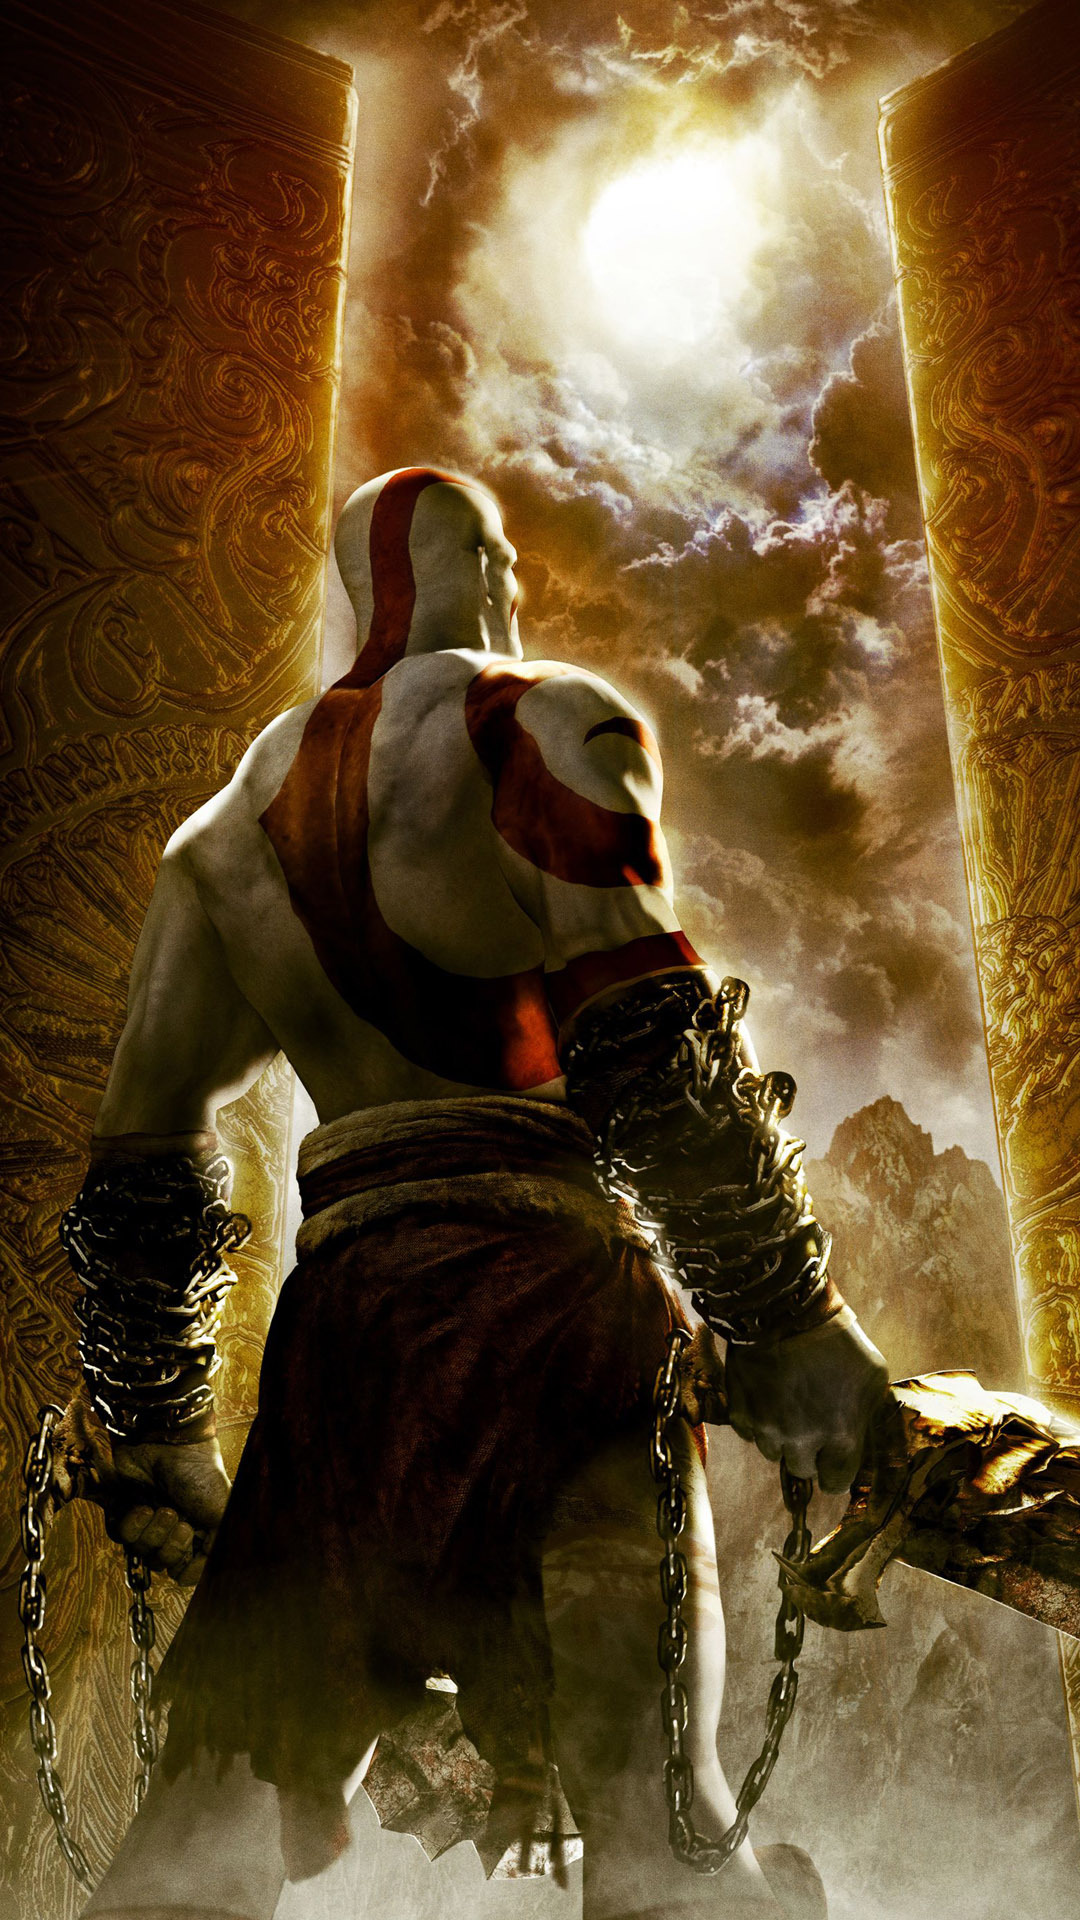 Download-1080x1920-Kratos-God-of-war-Face-Eyes-Scar-wallpaper-wp3404937